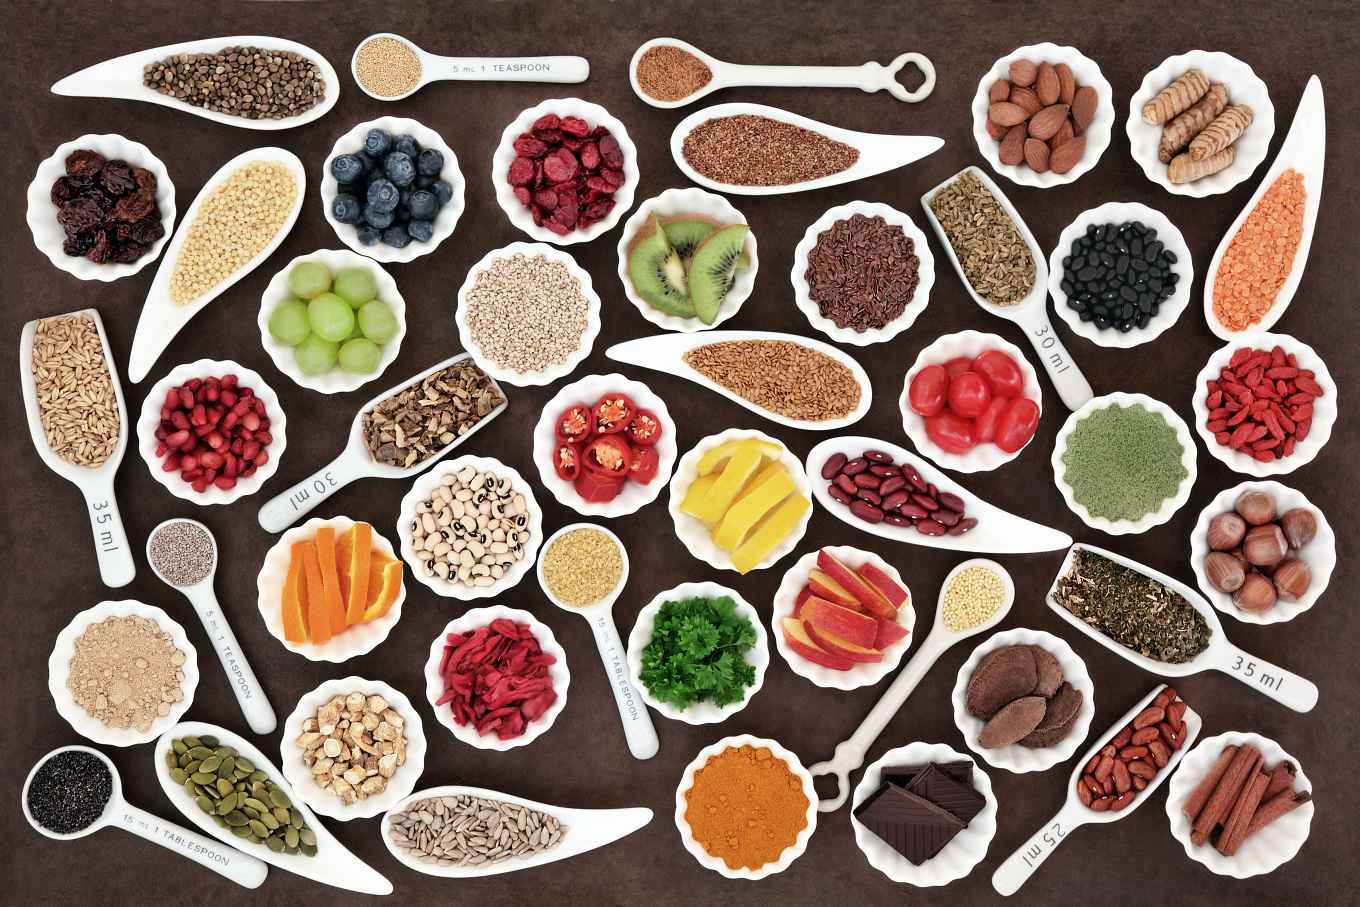 Five Reasons a Plant-based Diet May Help Prevent Type 2 Diabetes